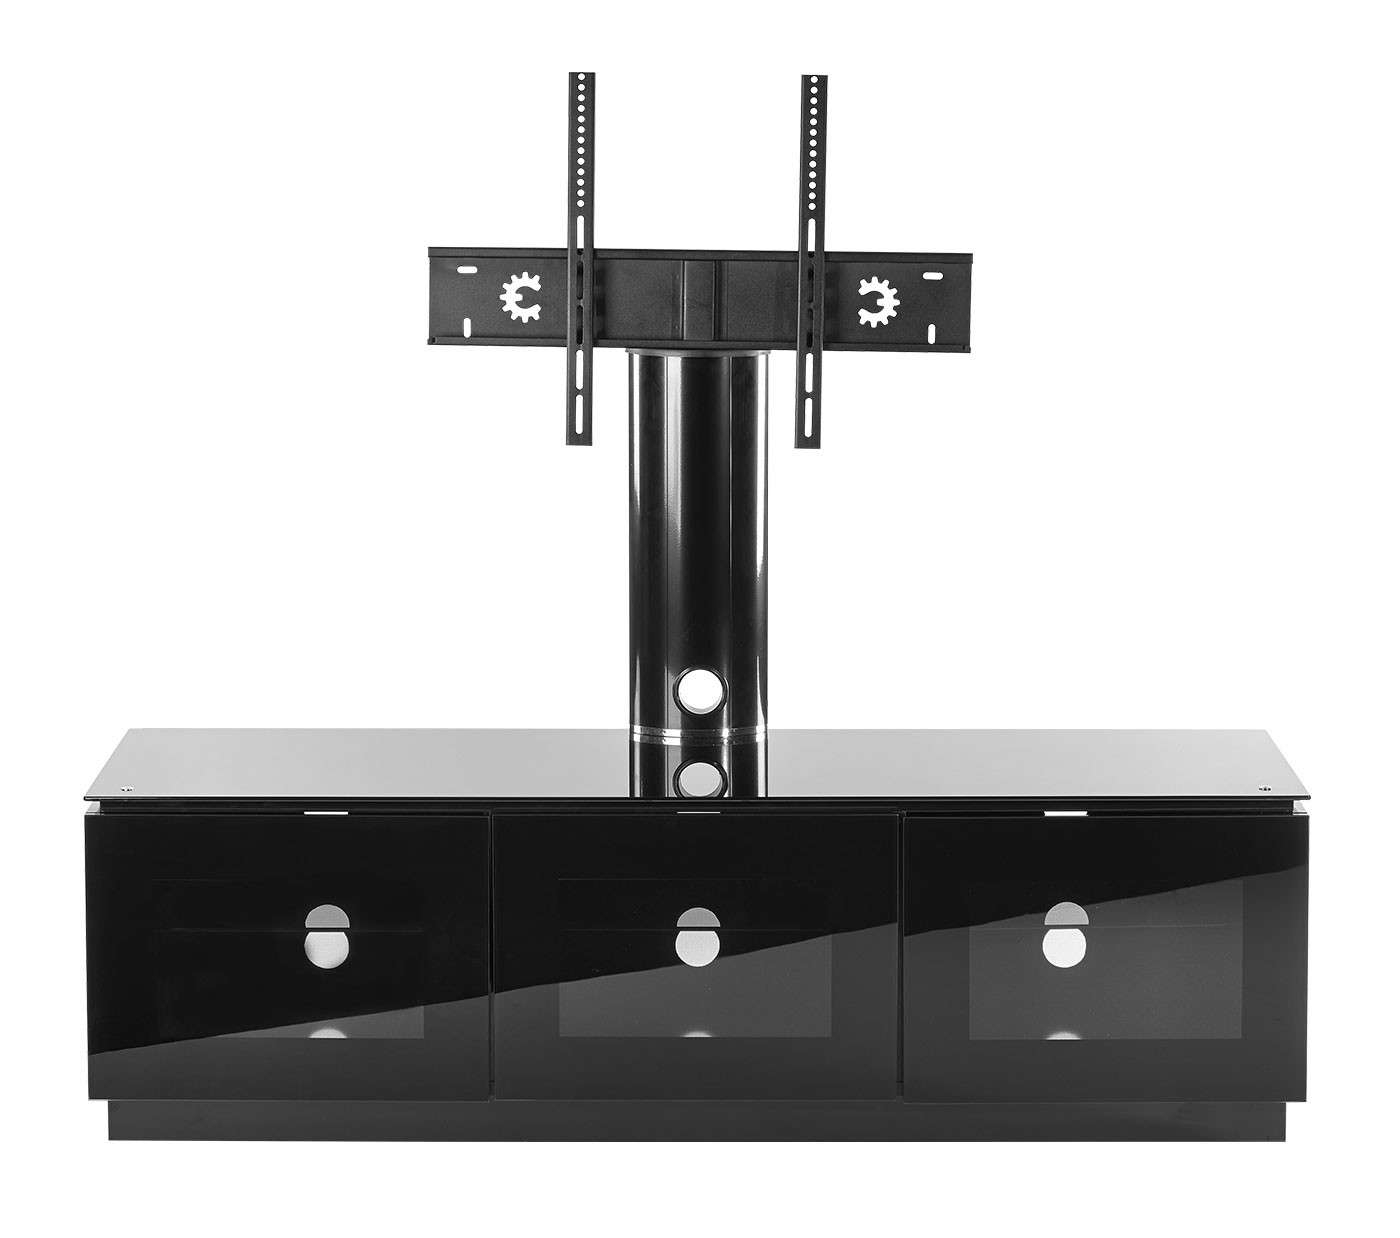 Black Tv Cabinet With Mount For Up To 65 Inch Tv | Mmt D1500 Xarm With Tv Stands Black Gloss (View 6 of 15)